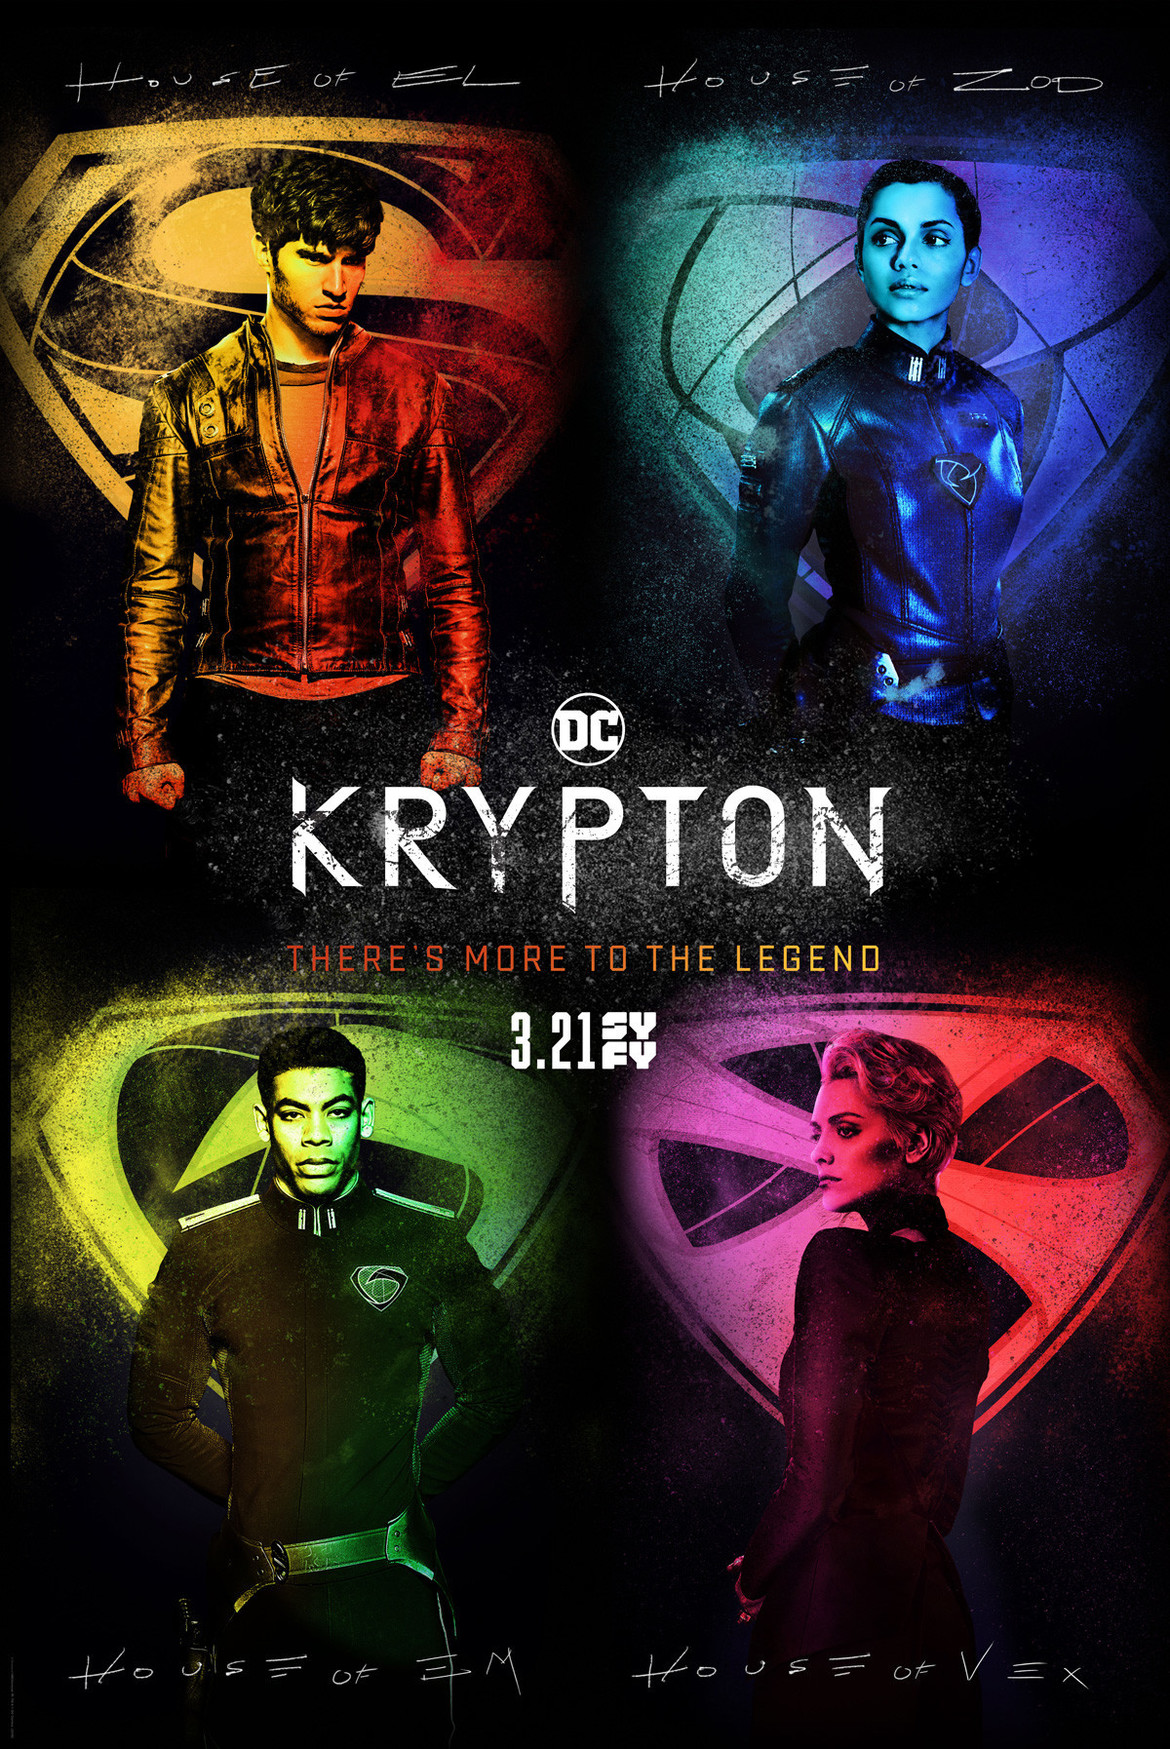 krypton_gallery_spray_paint_01.jpg